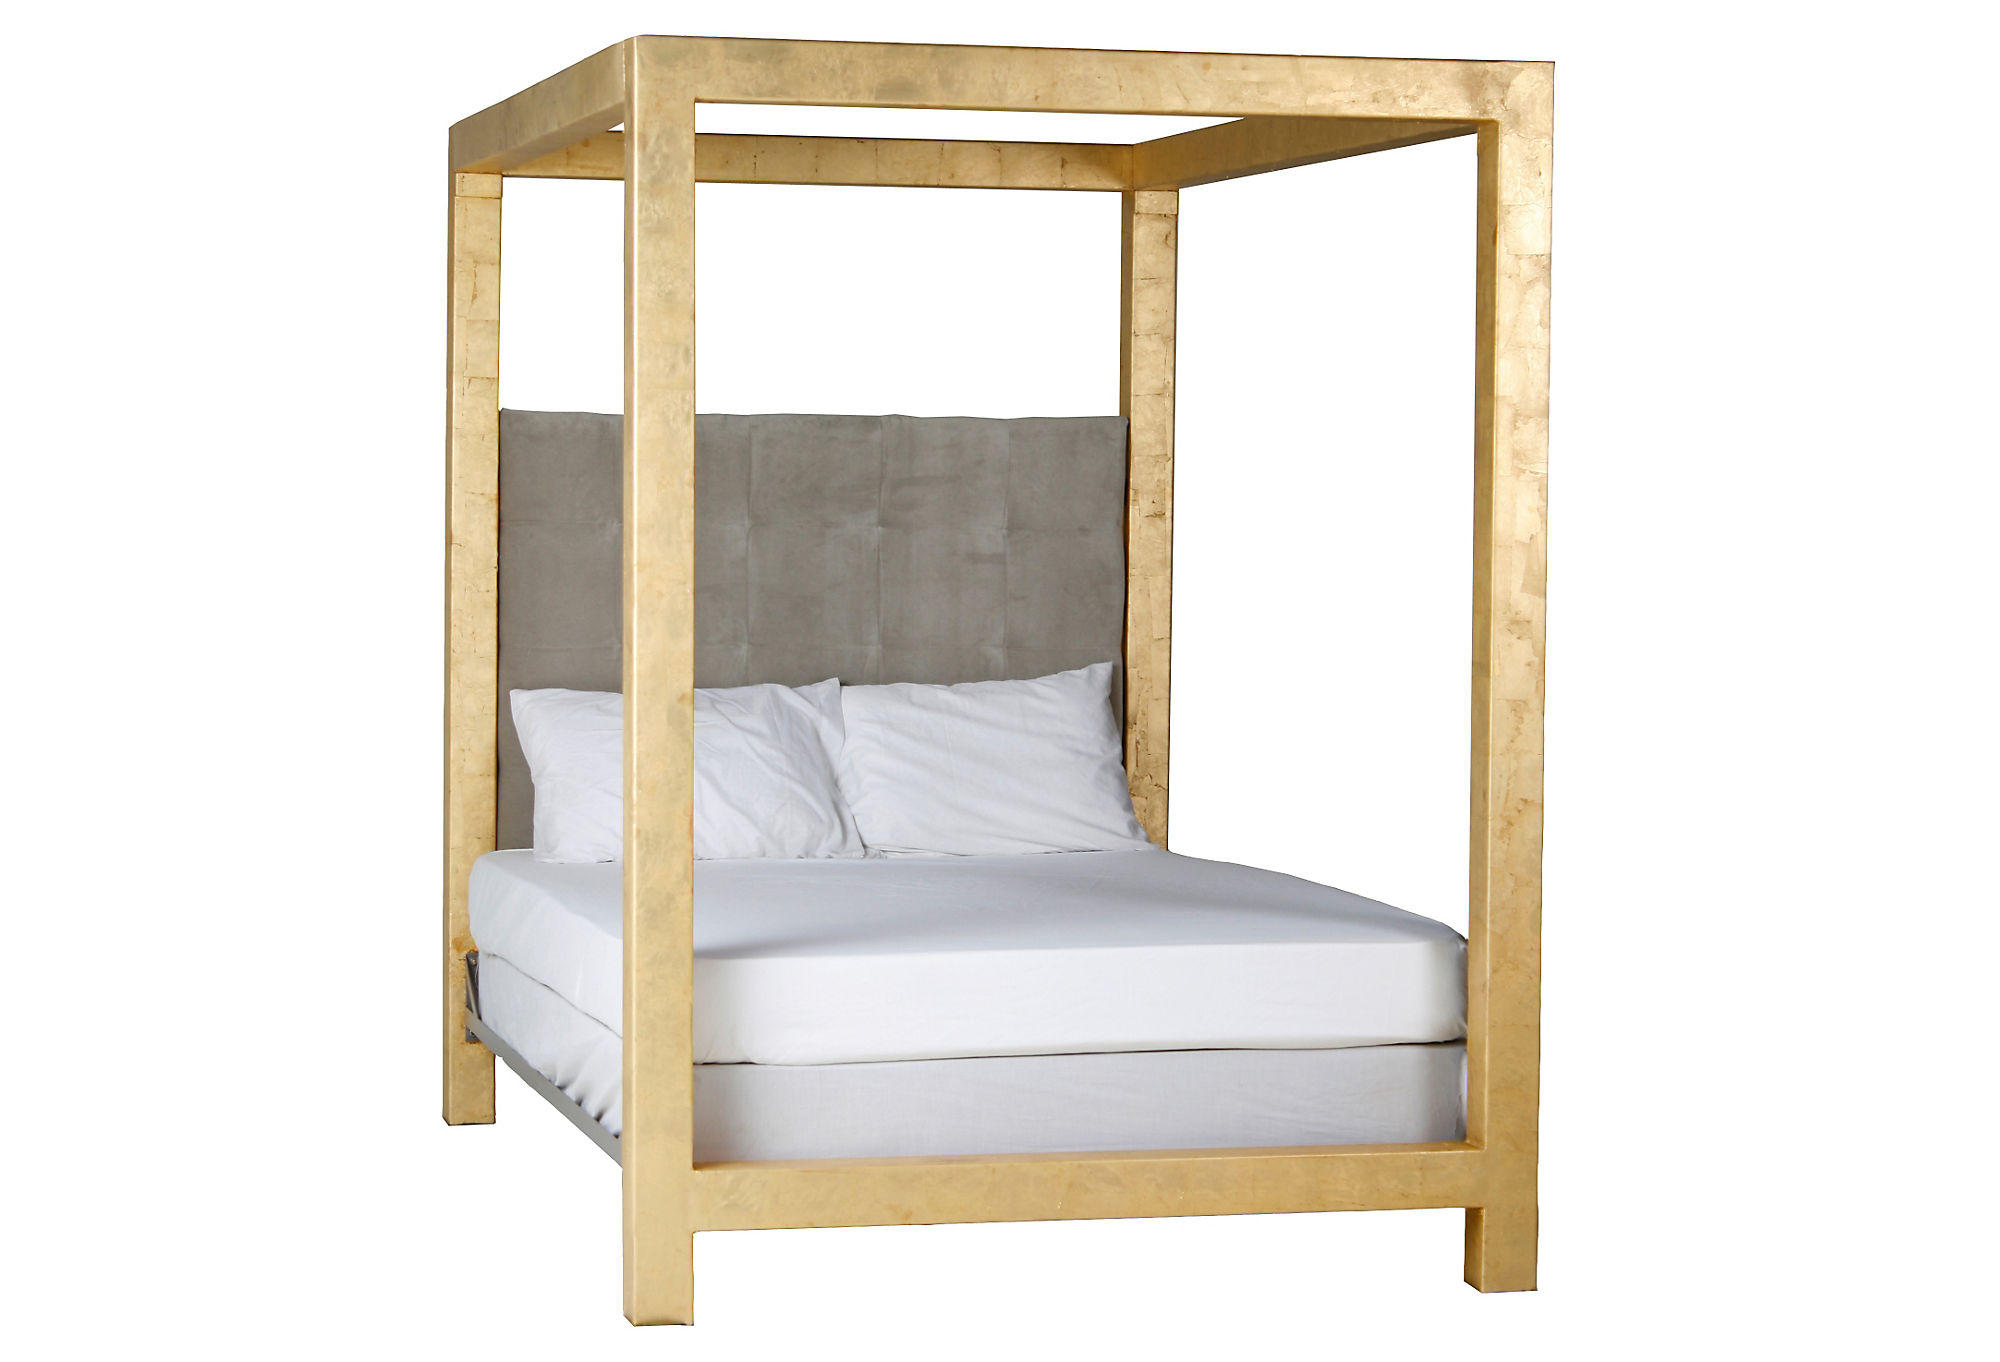 10 funny gold canopy bed quotes bangdodo